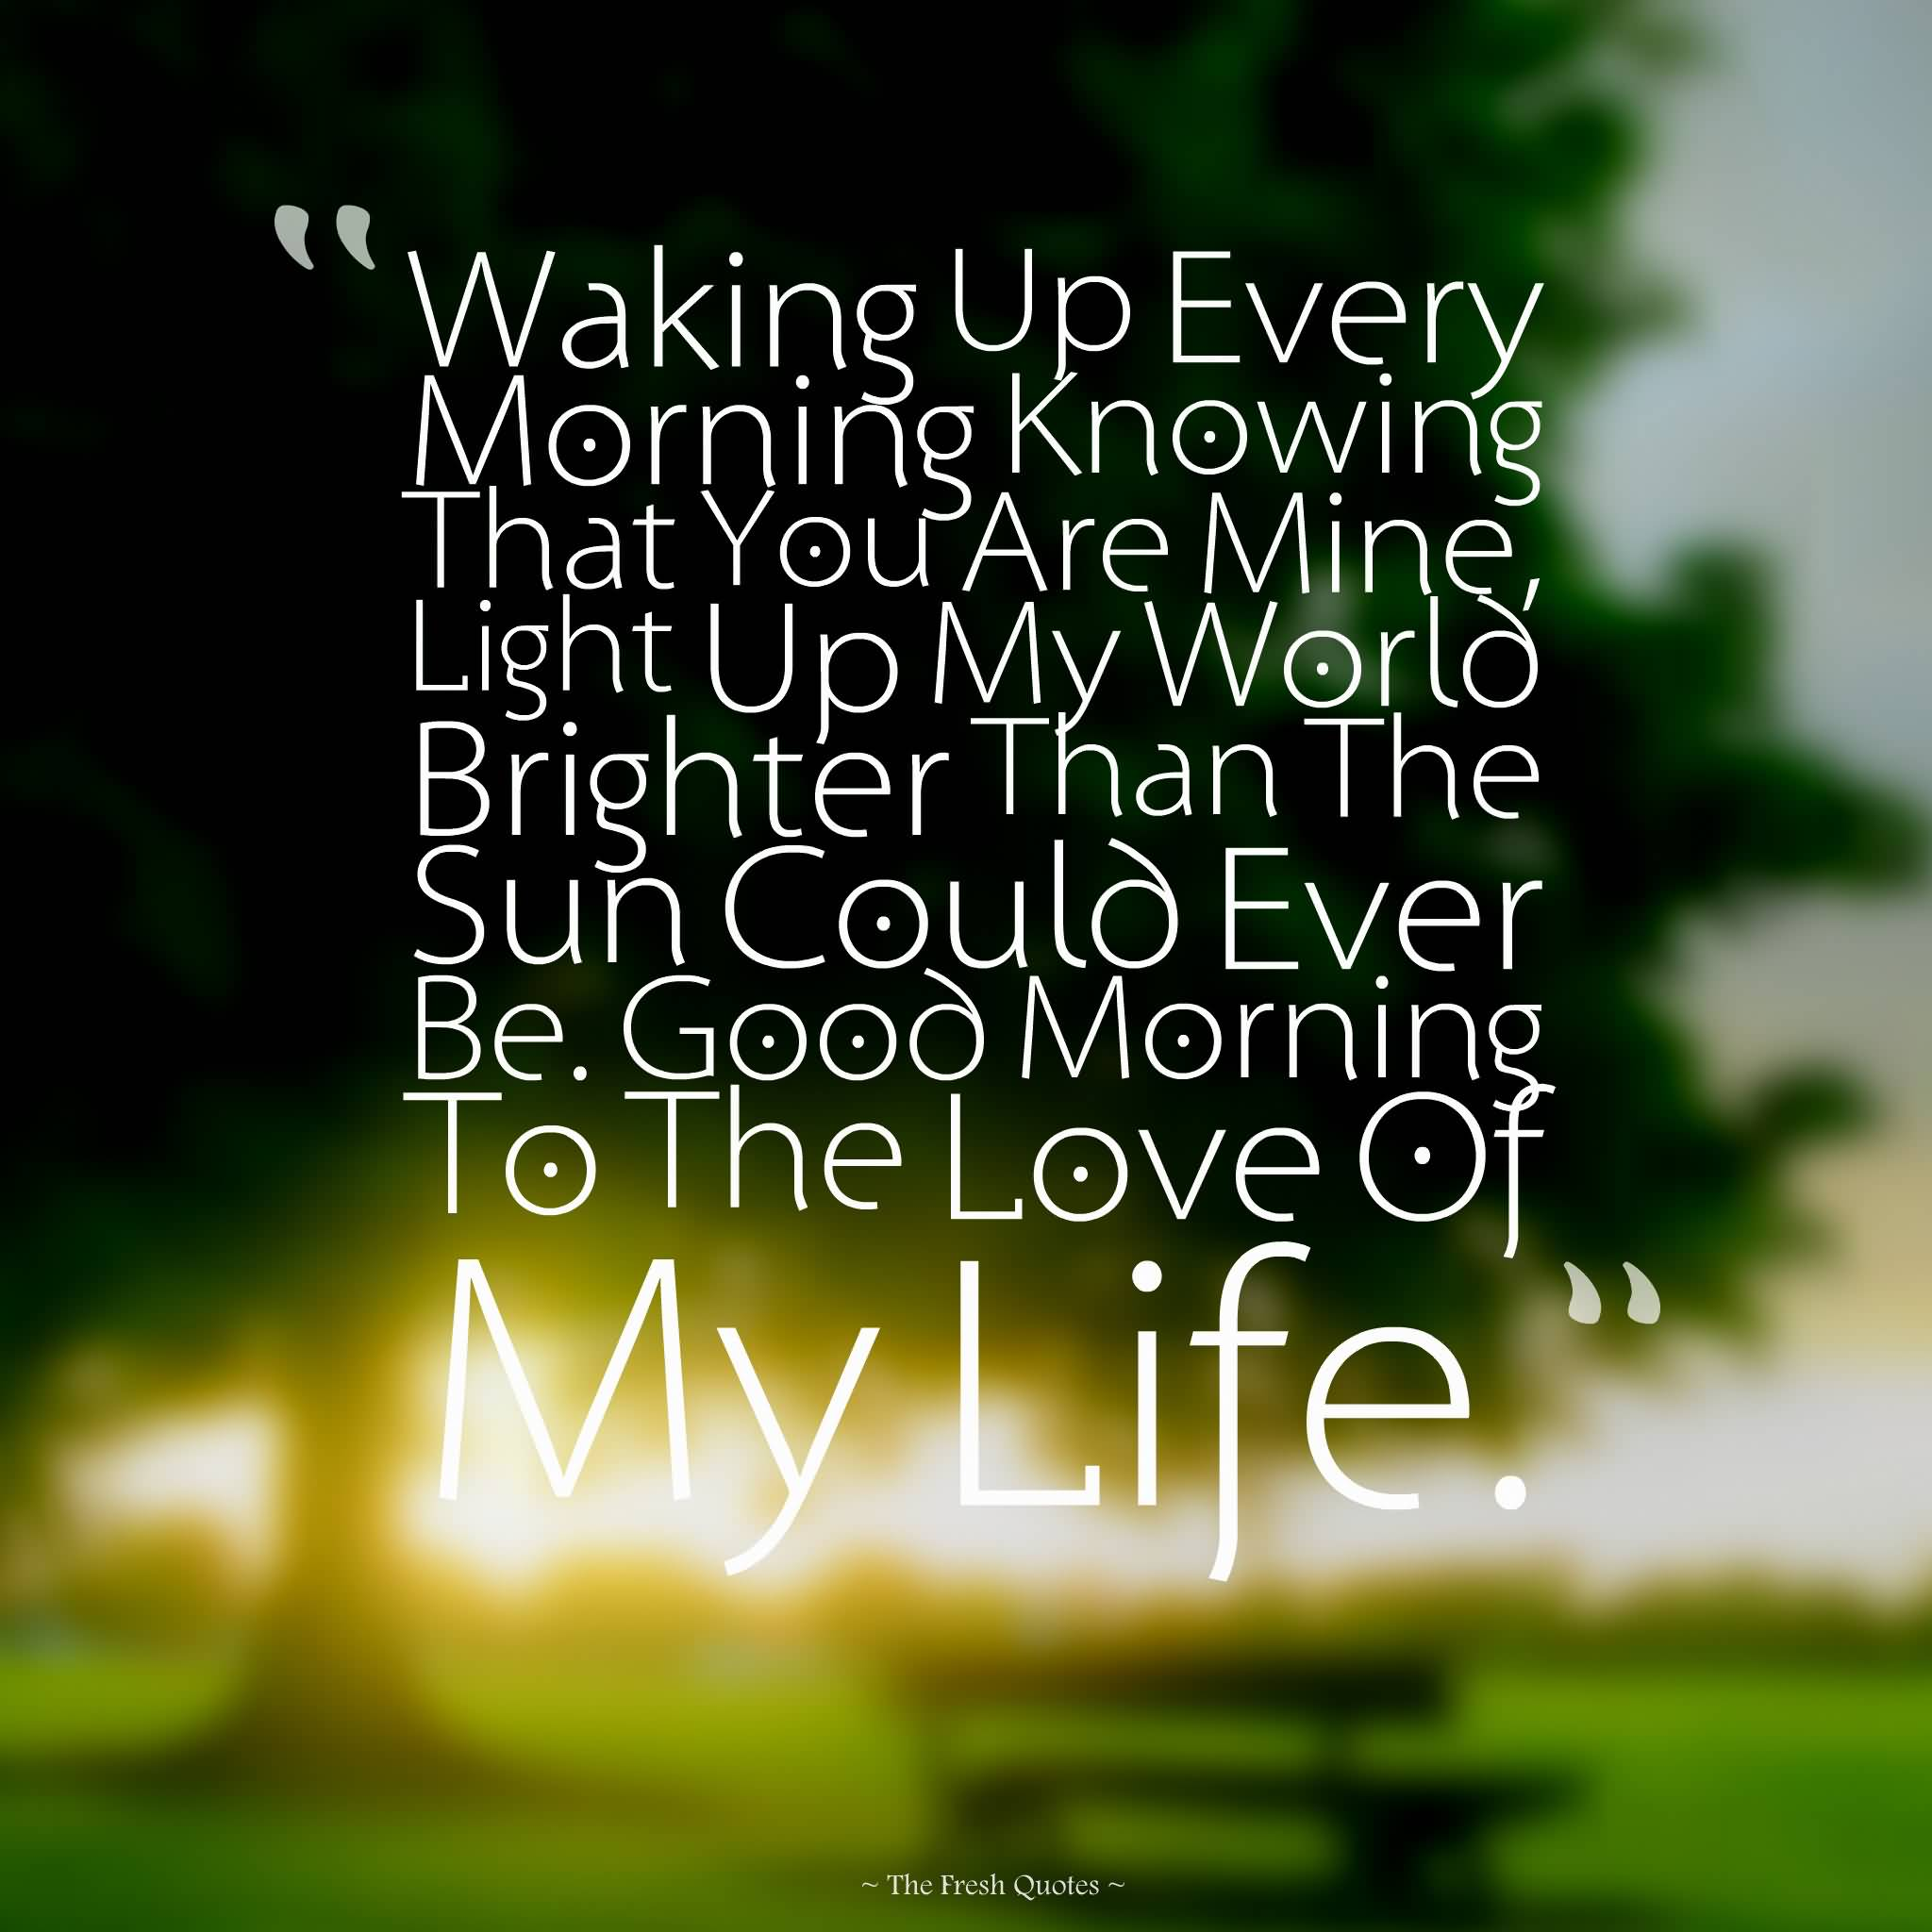 Love Of My Life Quotes For Her 07